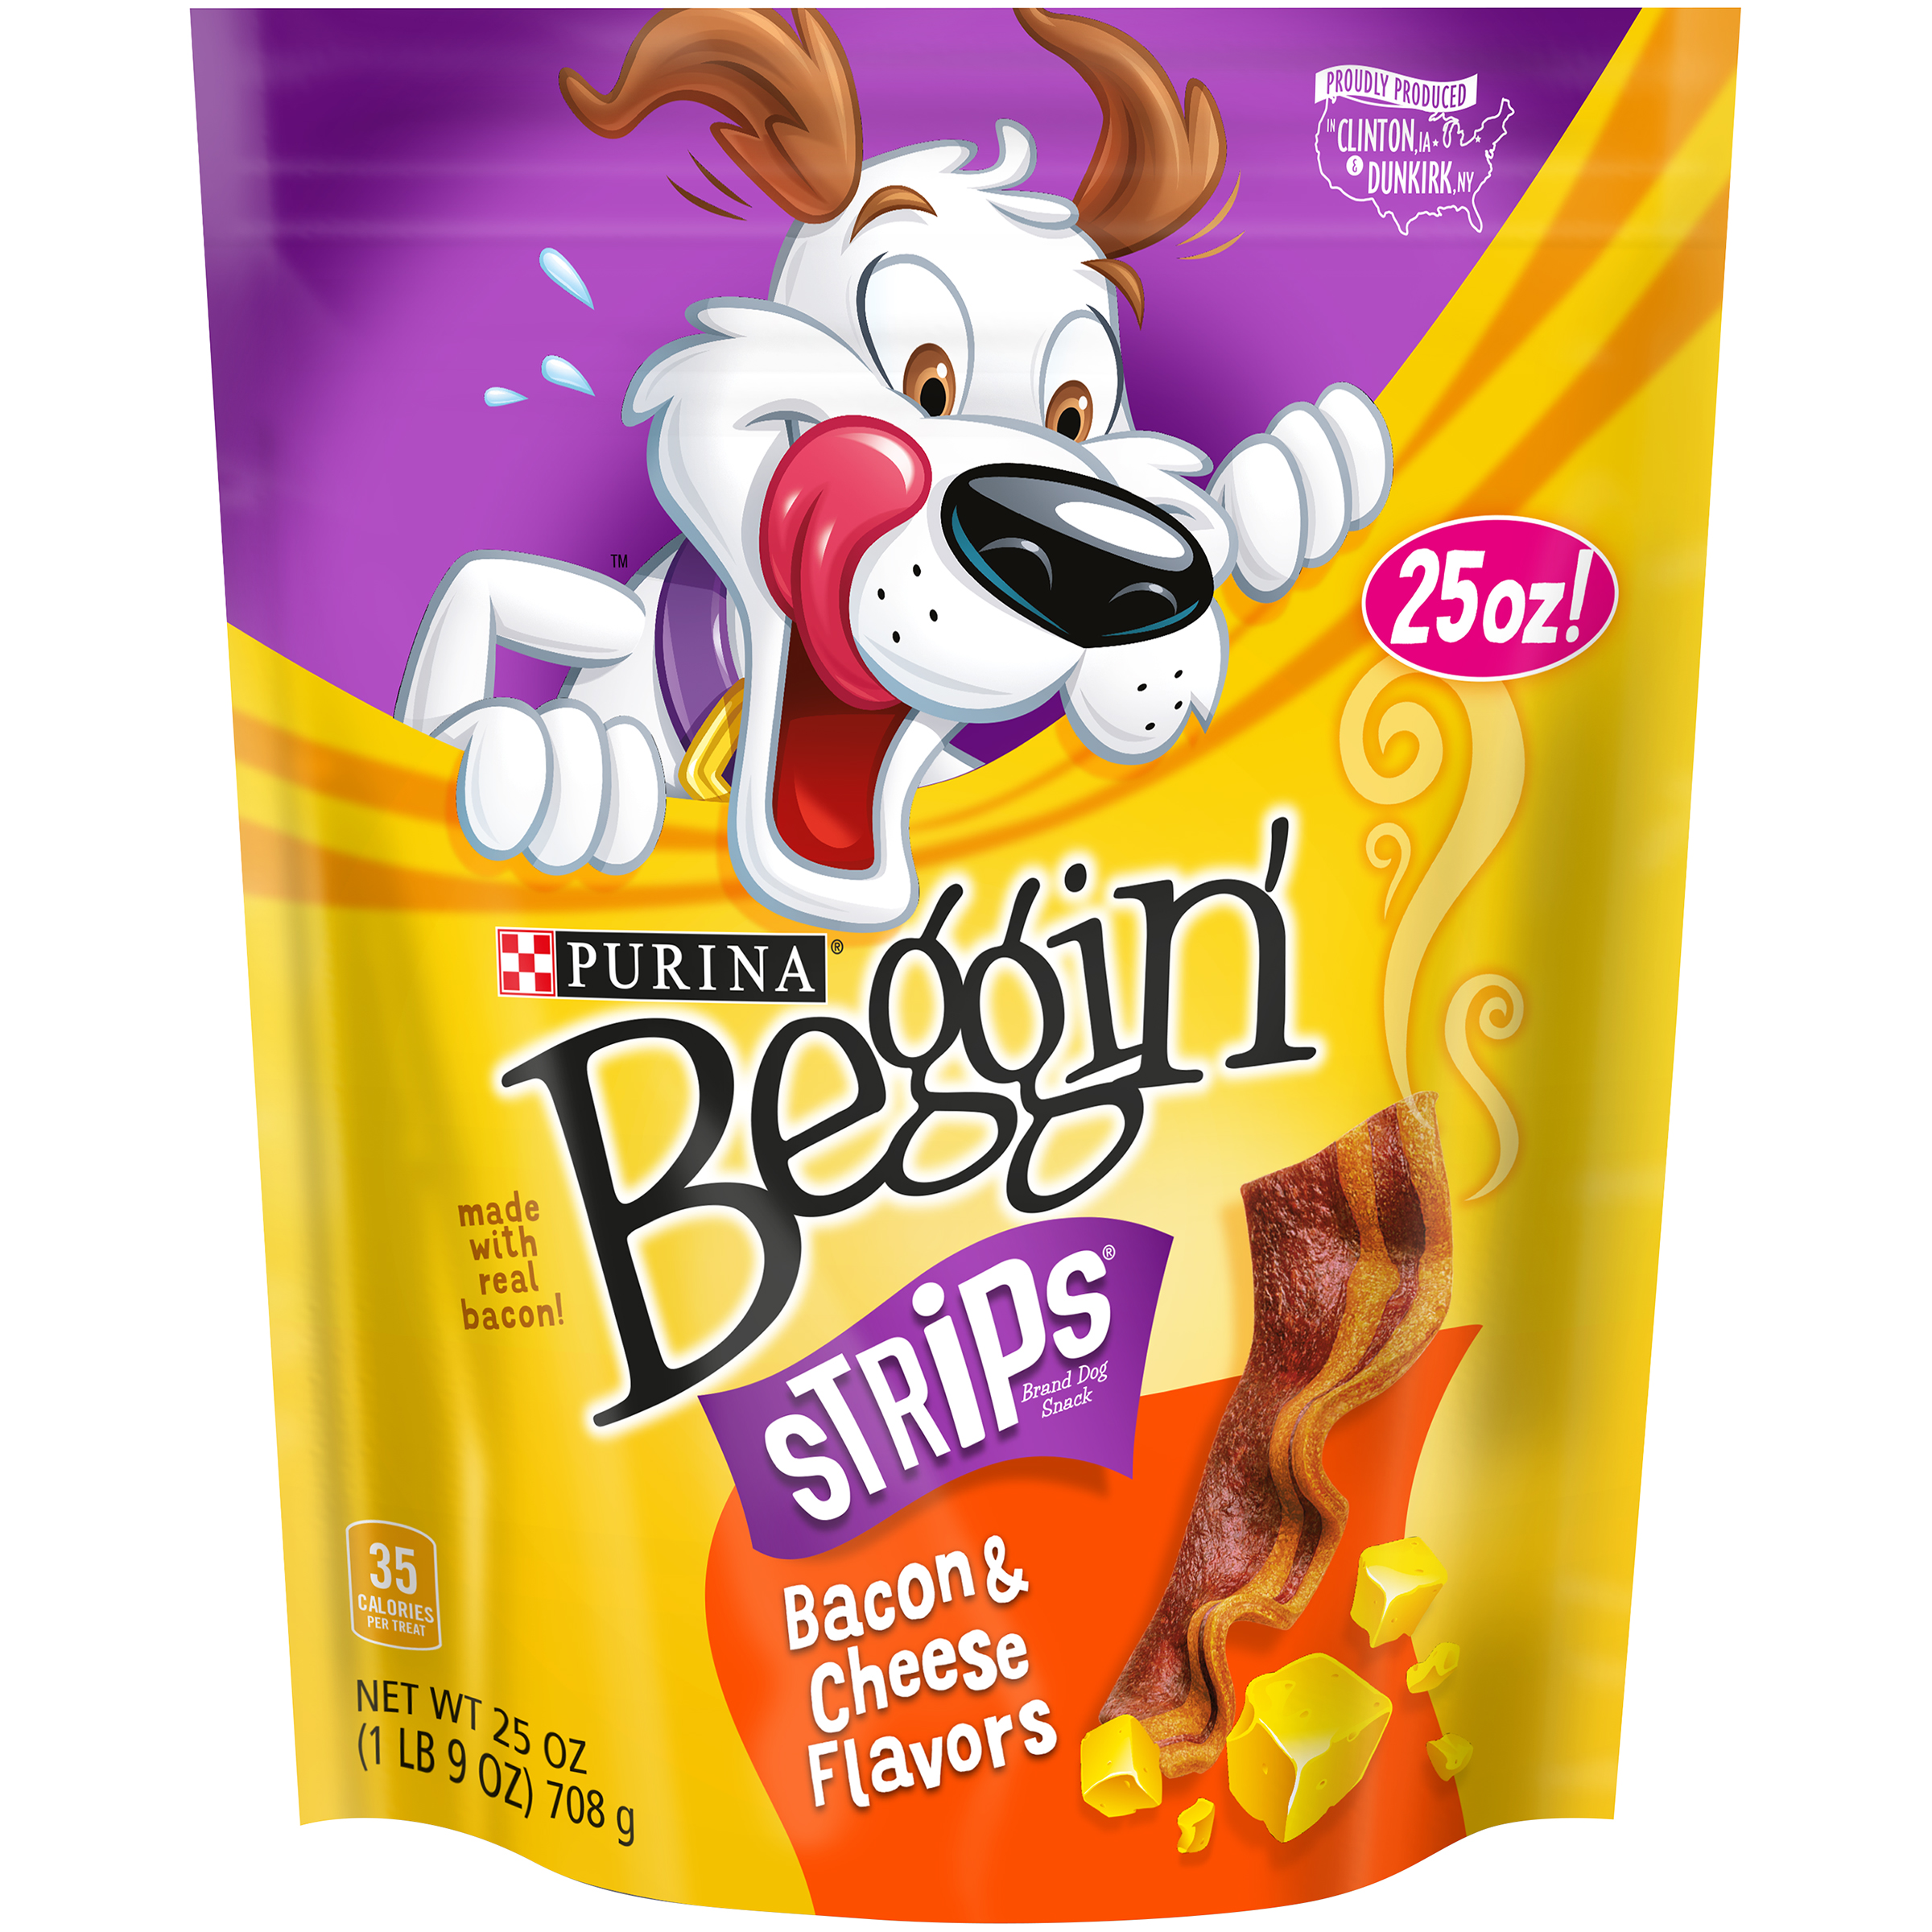 Purina Beggin' Strips Bacon & Cheese Flavors Dog Snacks 25 oz. Pouch